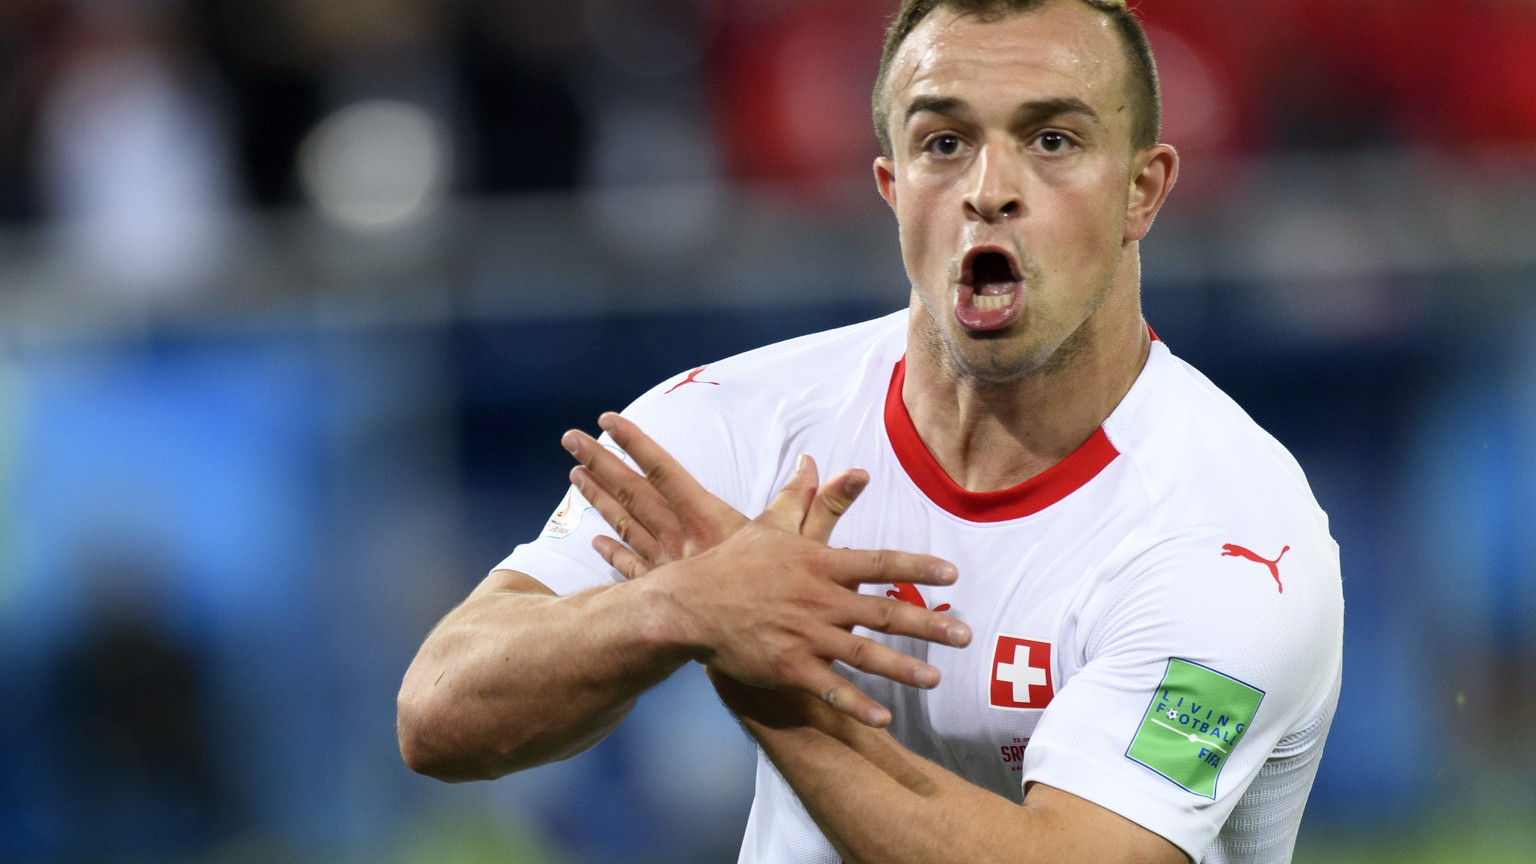 epa06832045 Switzerland's midfielder Xherdan Shaqiri celebrates after scoring the winning goal during the FIFA World Cup 2018 group E preliminary round soccer match between Switzerland and Serbia in Kaliningrad, Russia, 22 June 2018. Switzerland won 2-1.  (RESTRICTIONS APPLY: Editorial Use Only, not used in association with any commercial entity - Images must not be used in any form of alert service or push service of any kind including via mobile alert services, downloads to mobile devices or MMS messaging - Images must appear as still images and must not emulate match action video footage - No alteration is made to, and no text or image is superimposed over, any published image which: (a) intentionally obscures or removes a sponsor identification image; or (b) adds or overlays the commercial identification of any third party which is not officially associated with the FIFA World Cup)  EPA/LAURENT GILLIERON   EDITORIAL USE ONLY